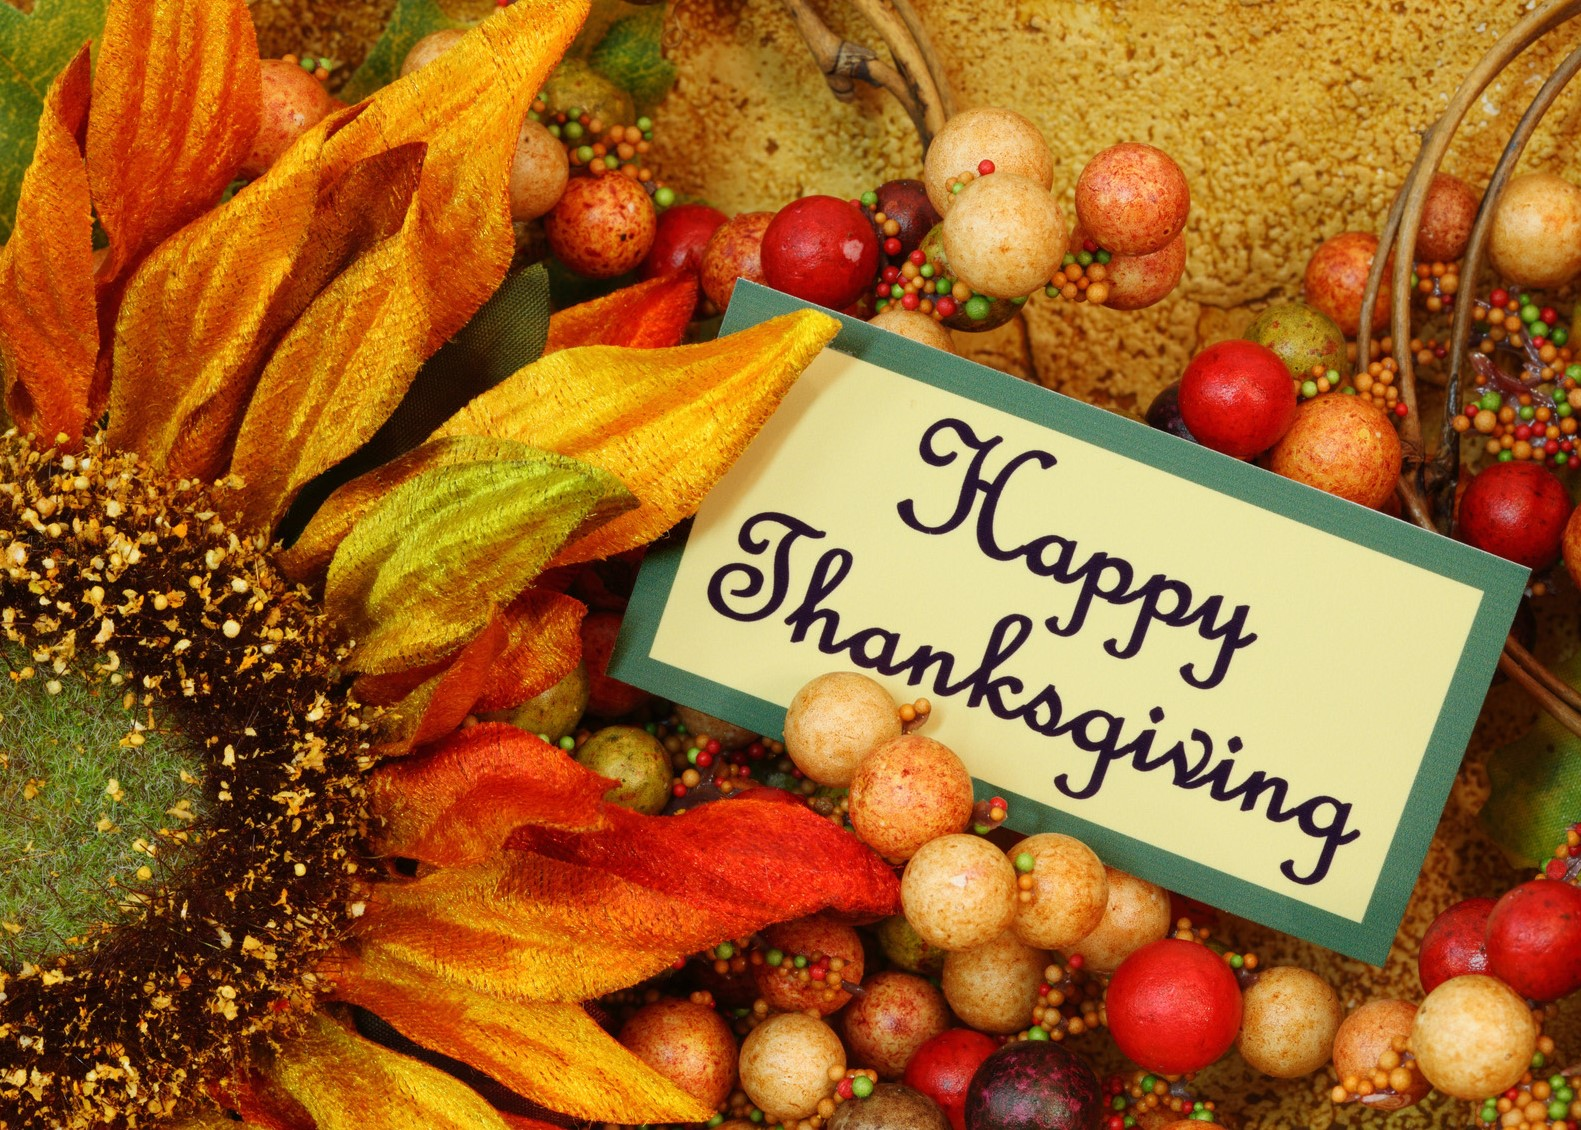 Happy Thanksgiving!  4Cs will be closed for the Thanksgiving Holiday, November 28-29.